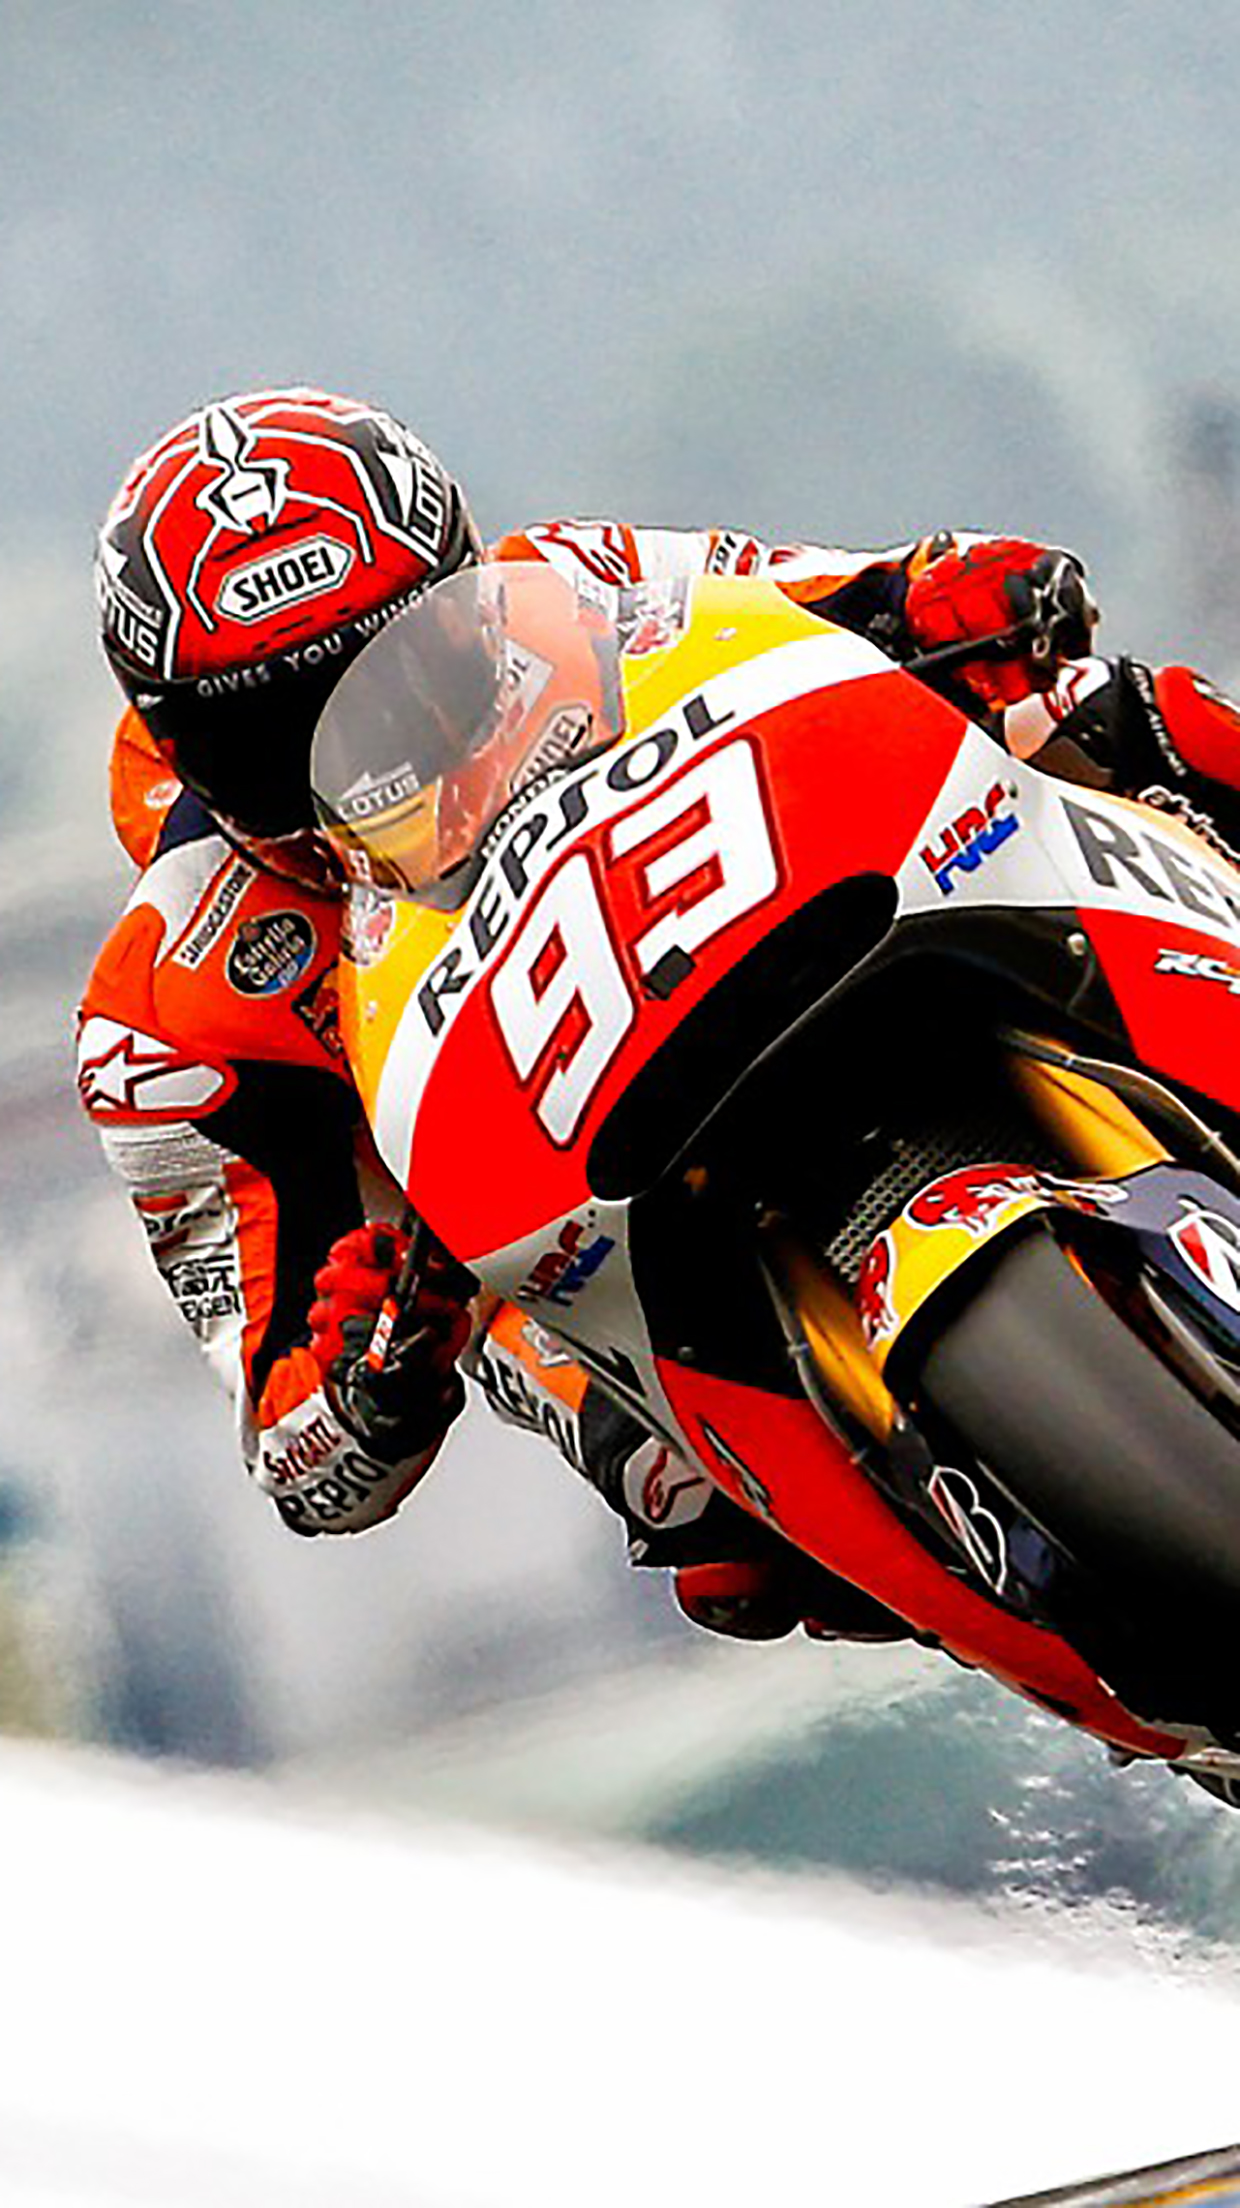 New Wallpaper For Iphone 5s Motogp 1 Wallpaper For Iphone X 8 7 6 Free Download